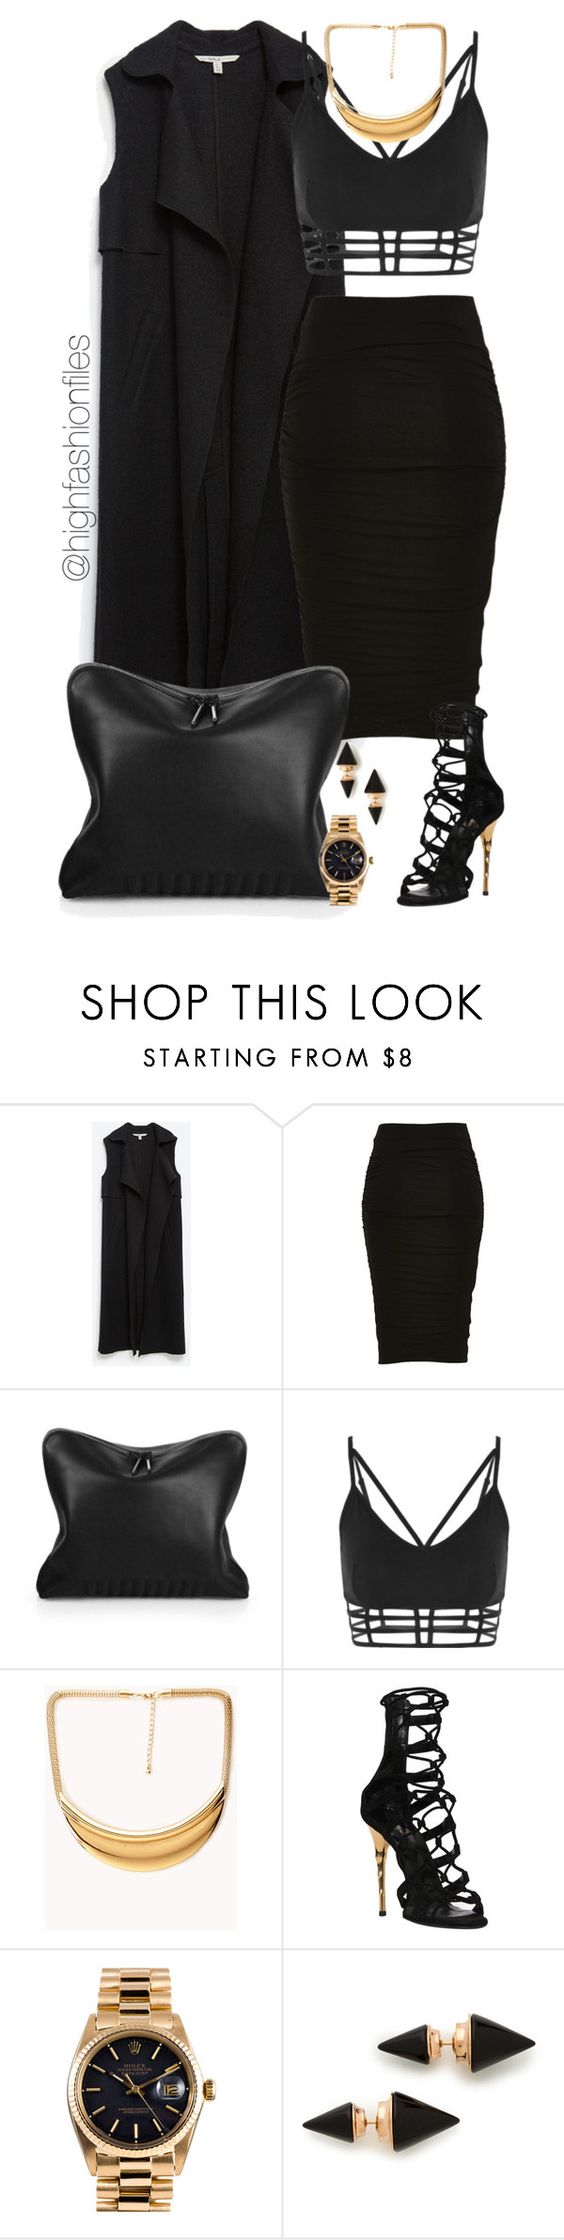 """Untitled #2188"" by highfashionfiles ❤ liked on Polyvore featuring Zara, 3.1 Phillip Lim, Forever 21, Balmain, Rolex and Vita Fede"